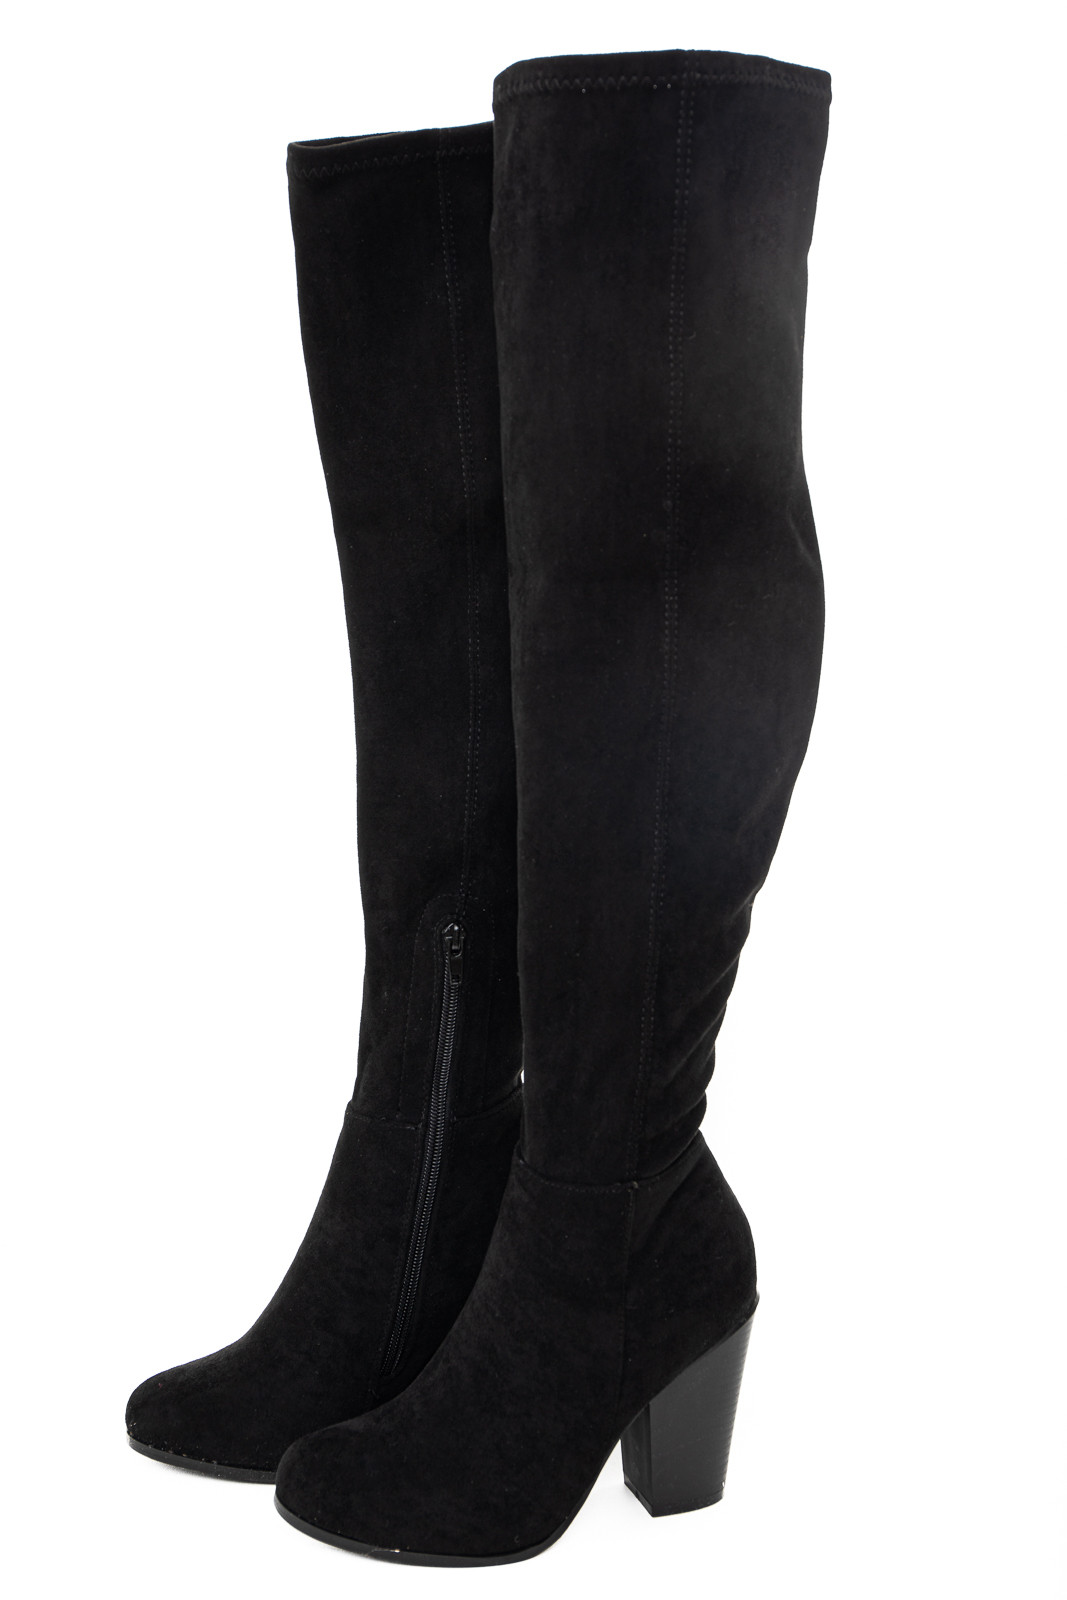 Black Knee High Boots with Side Zipper and Chunky Heel